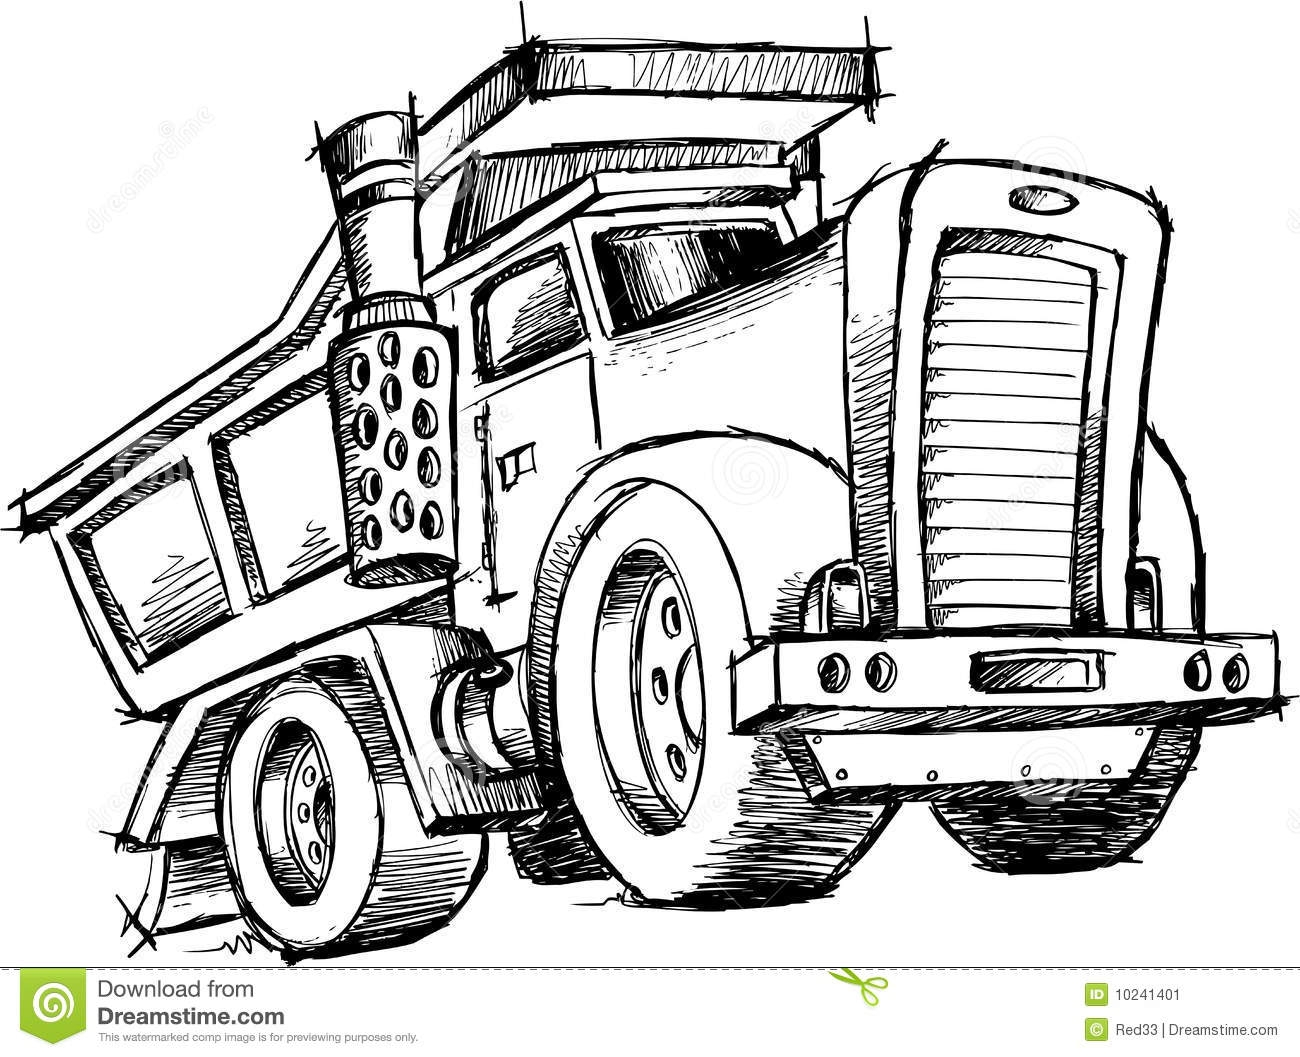 fire truck coloring page - stock image sketchy dump truck vector image